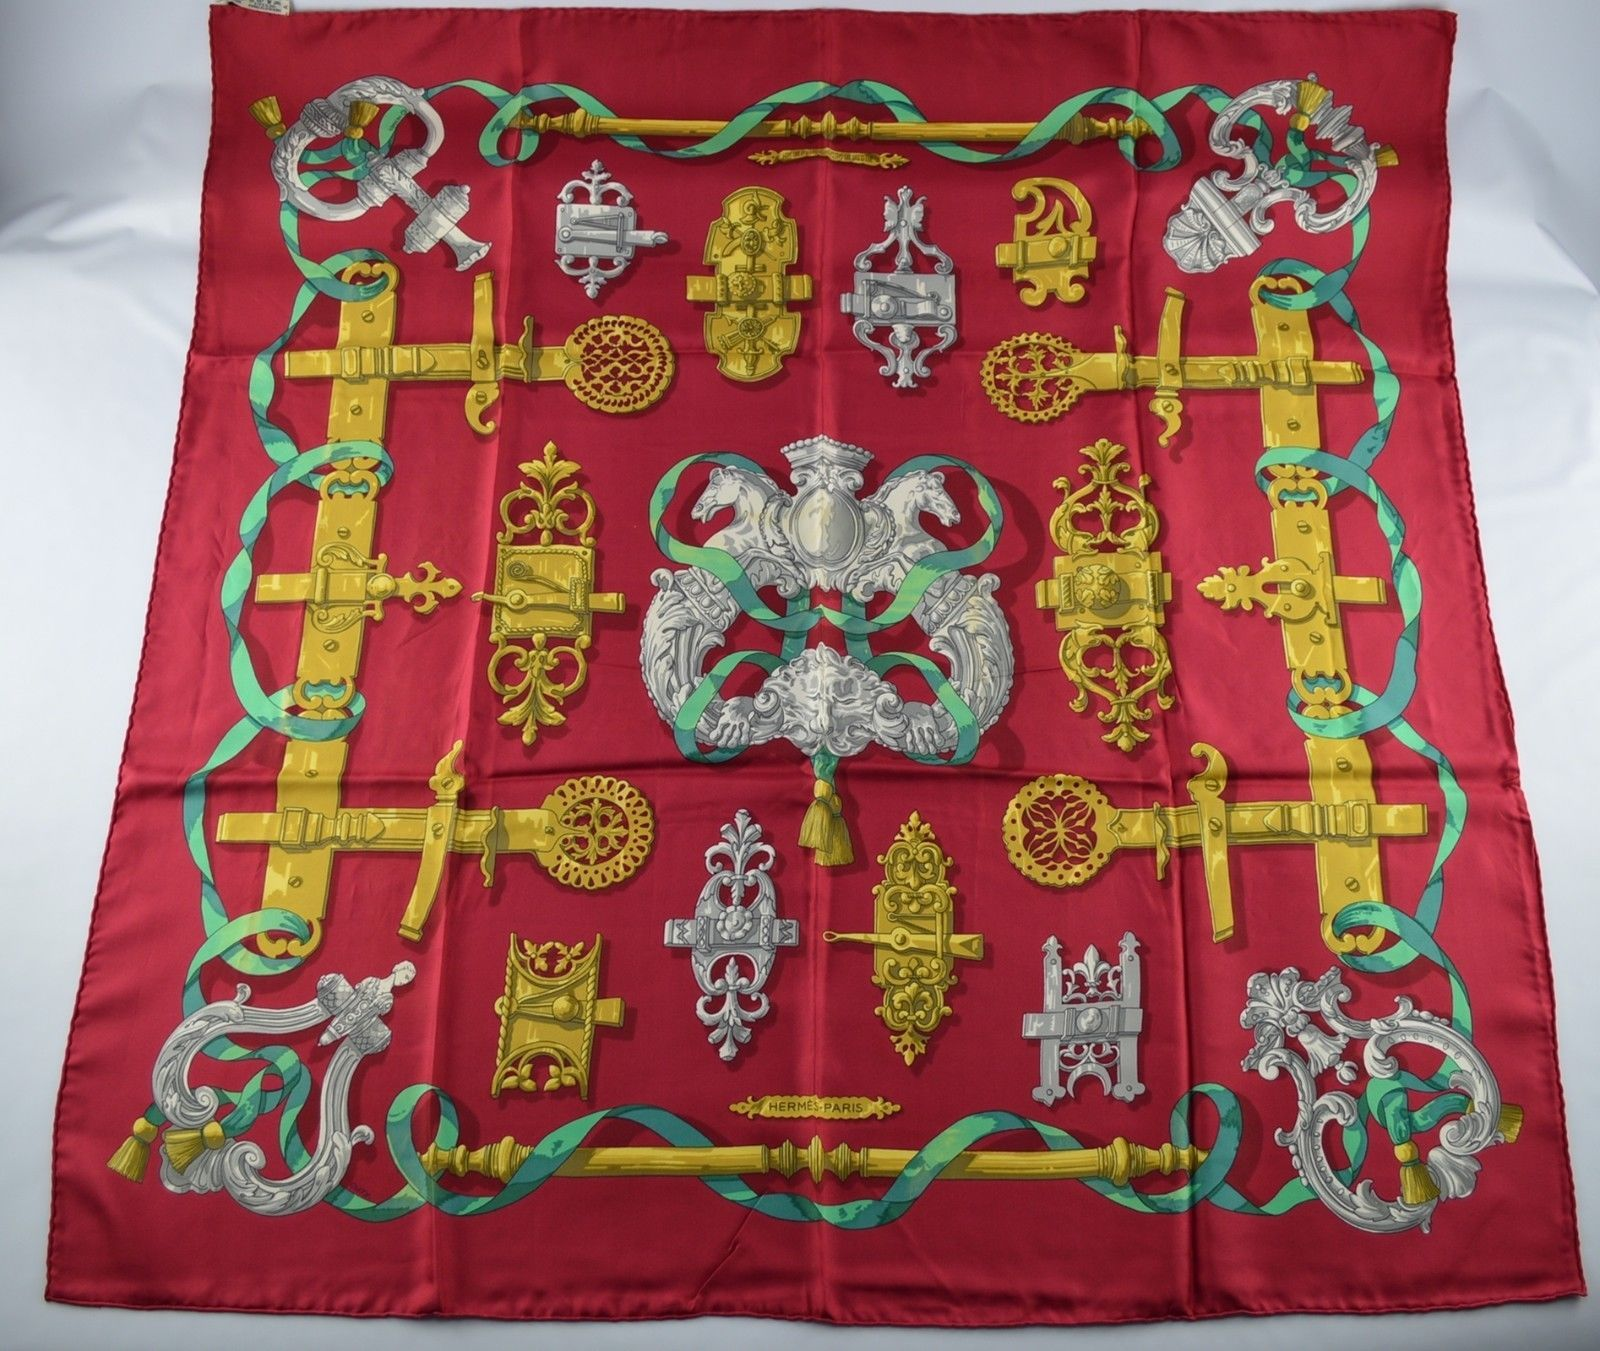 USED HERMES SCARF 100%SILK 36 Ferronnerie BORDEAUX  GOLD  GREEN  GRAY  https://t.co/IHJRmXuzRA https://t.co/oMVNNTxFJx http://twitter.com/Soivzo_Riodge/status/775432133154308096